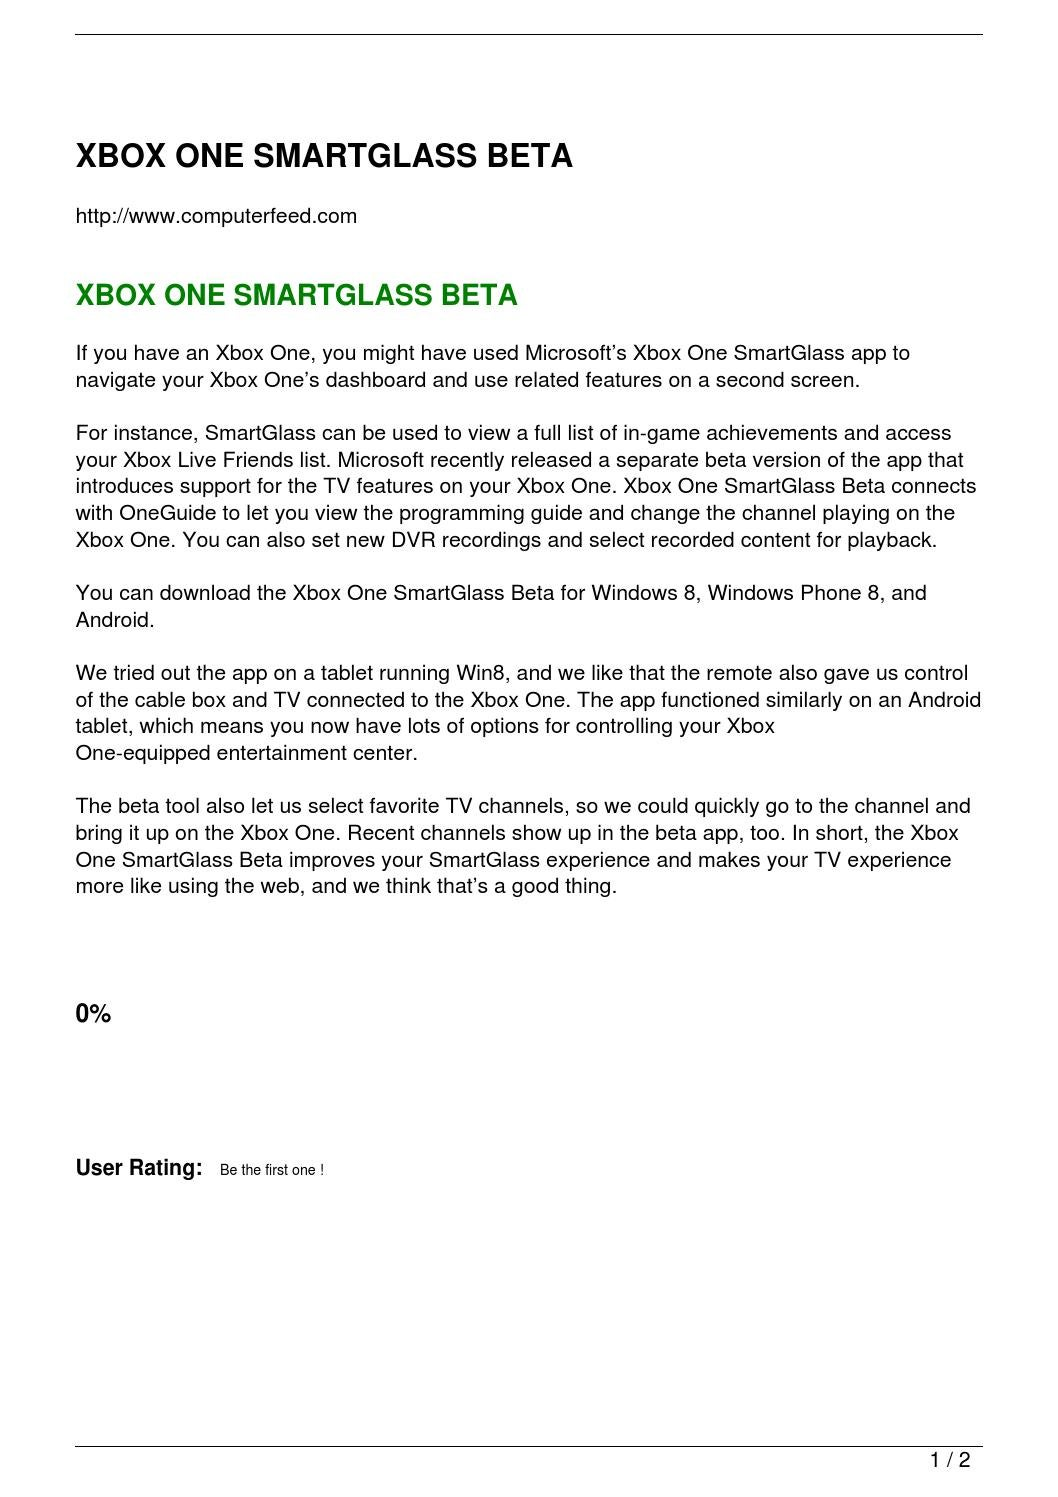 XBOX ONE SMARTGLASS BETA by computerfeed - issuu